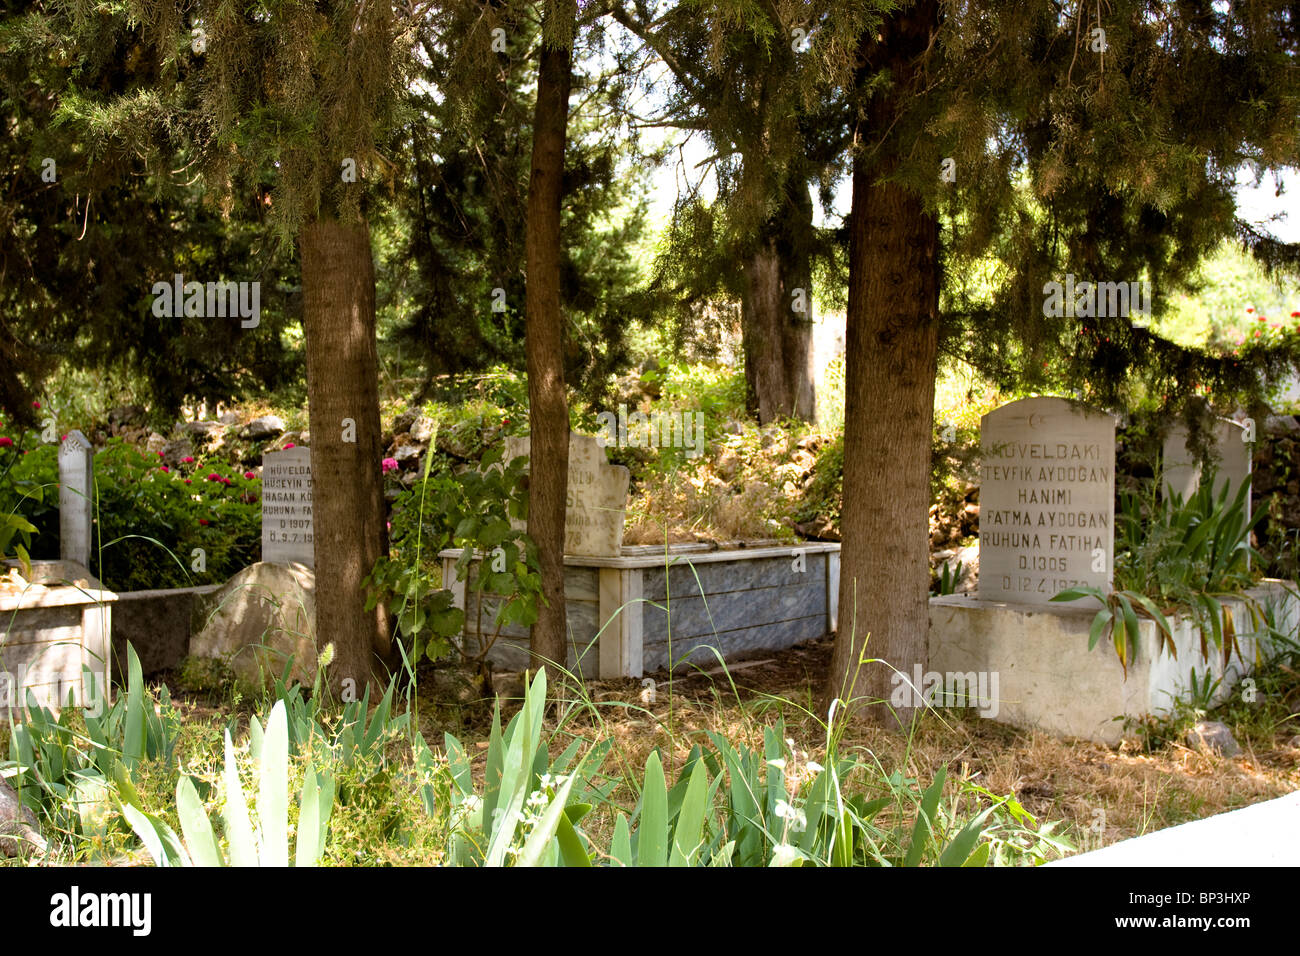 Tombstones surrounded by trees and plants, Alanya, Turkey. - Stock Image